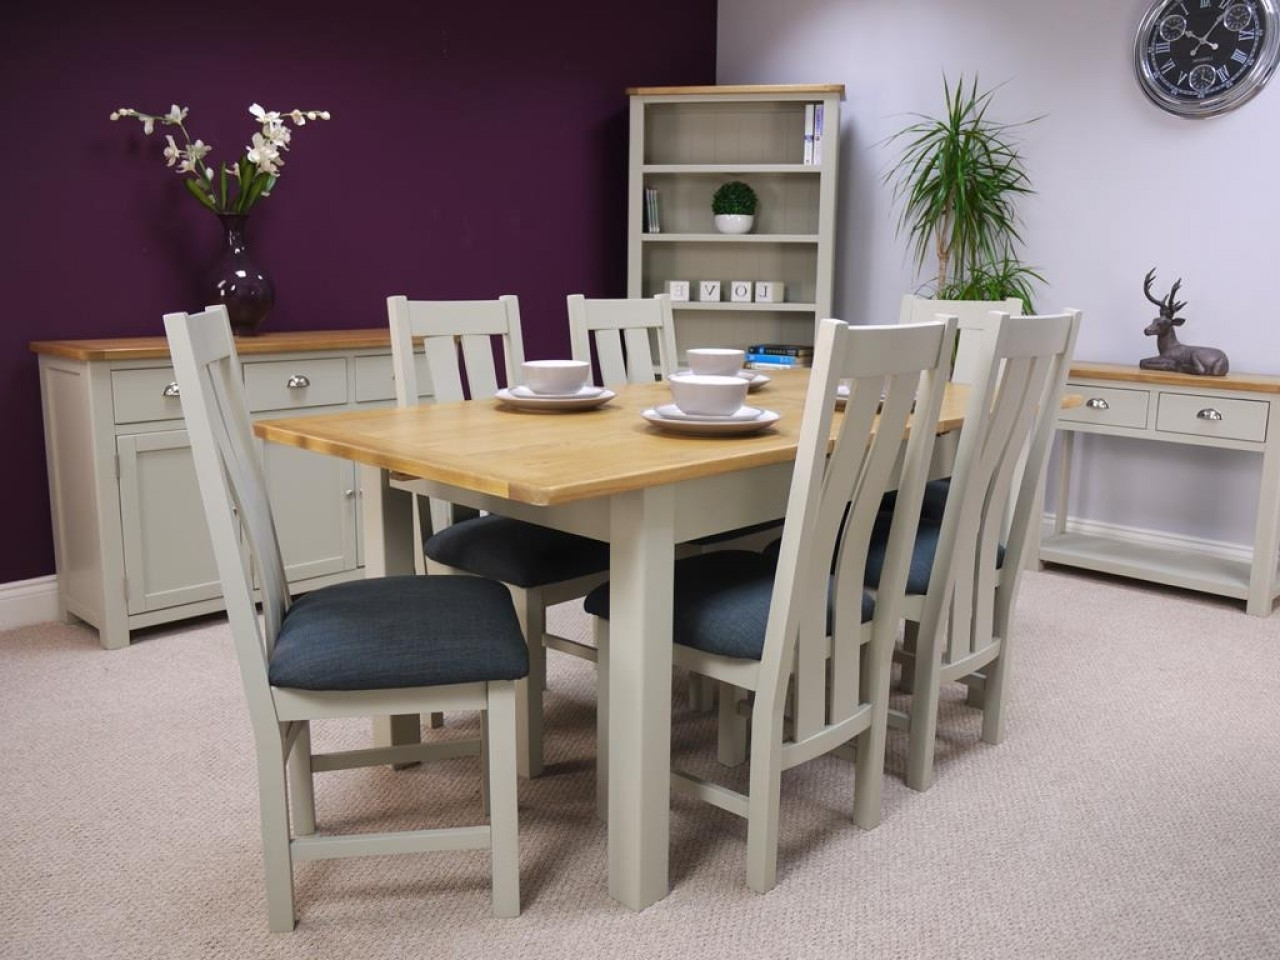 Extending Dining Room Tables And Chairs Regarding Best And Newest 5. Modern Venicia Collection Extending Dining Table In Grey Grey (Gallery 3 of 25)